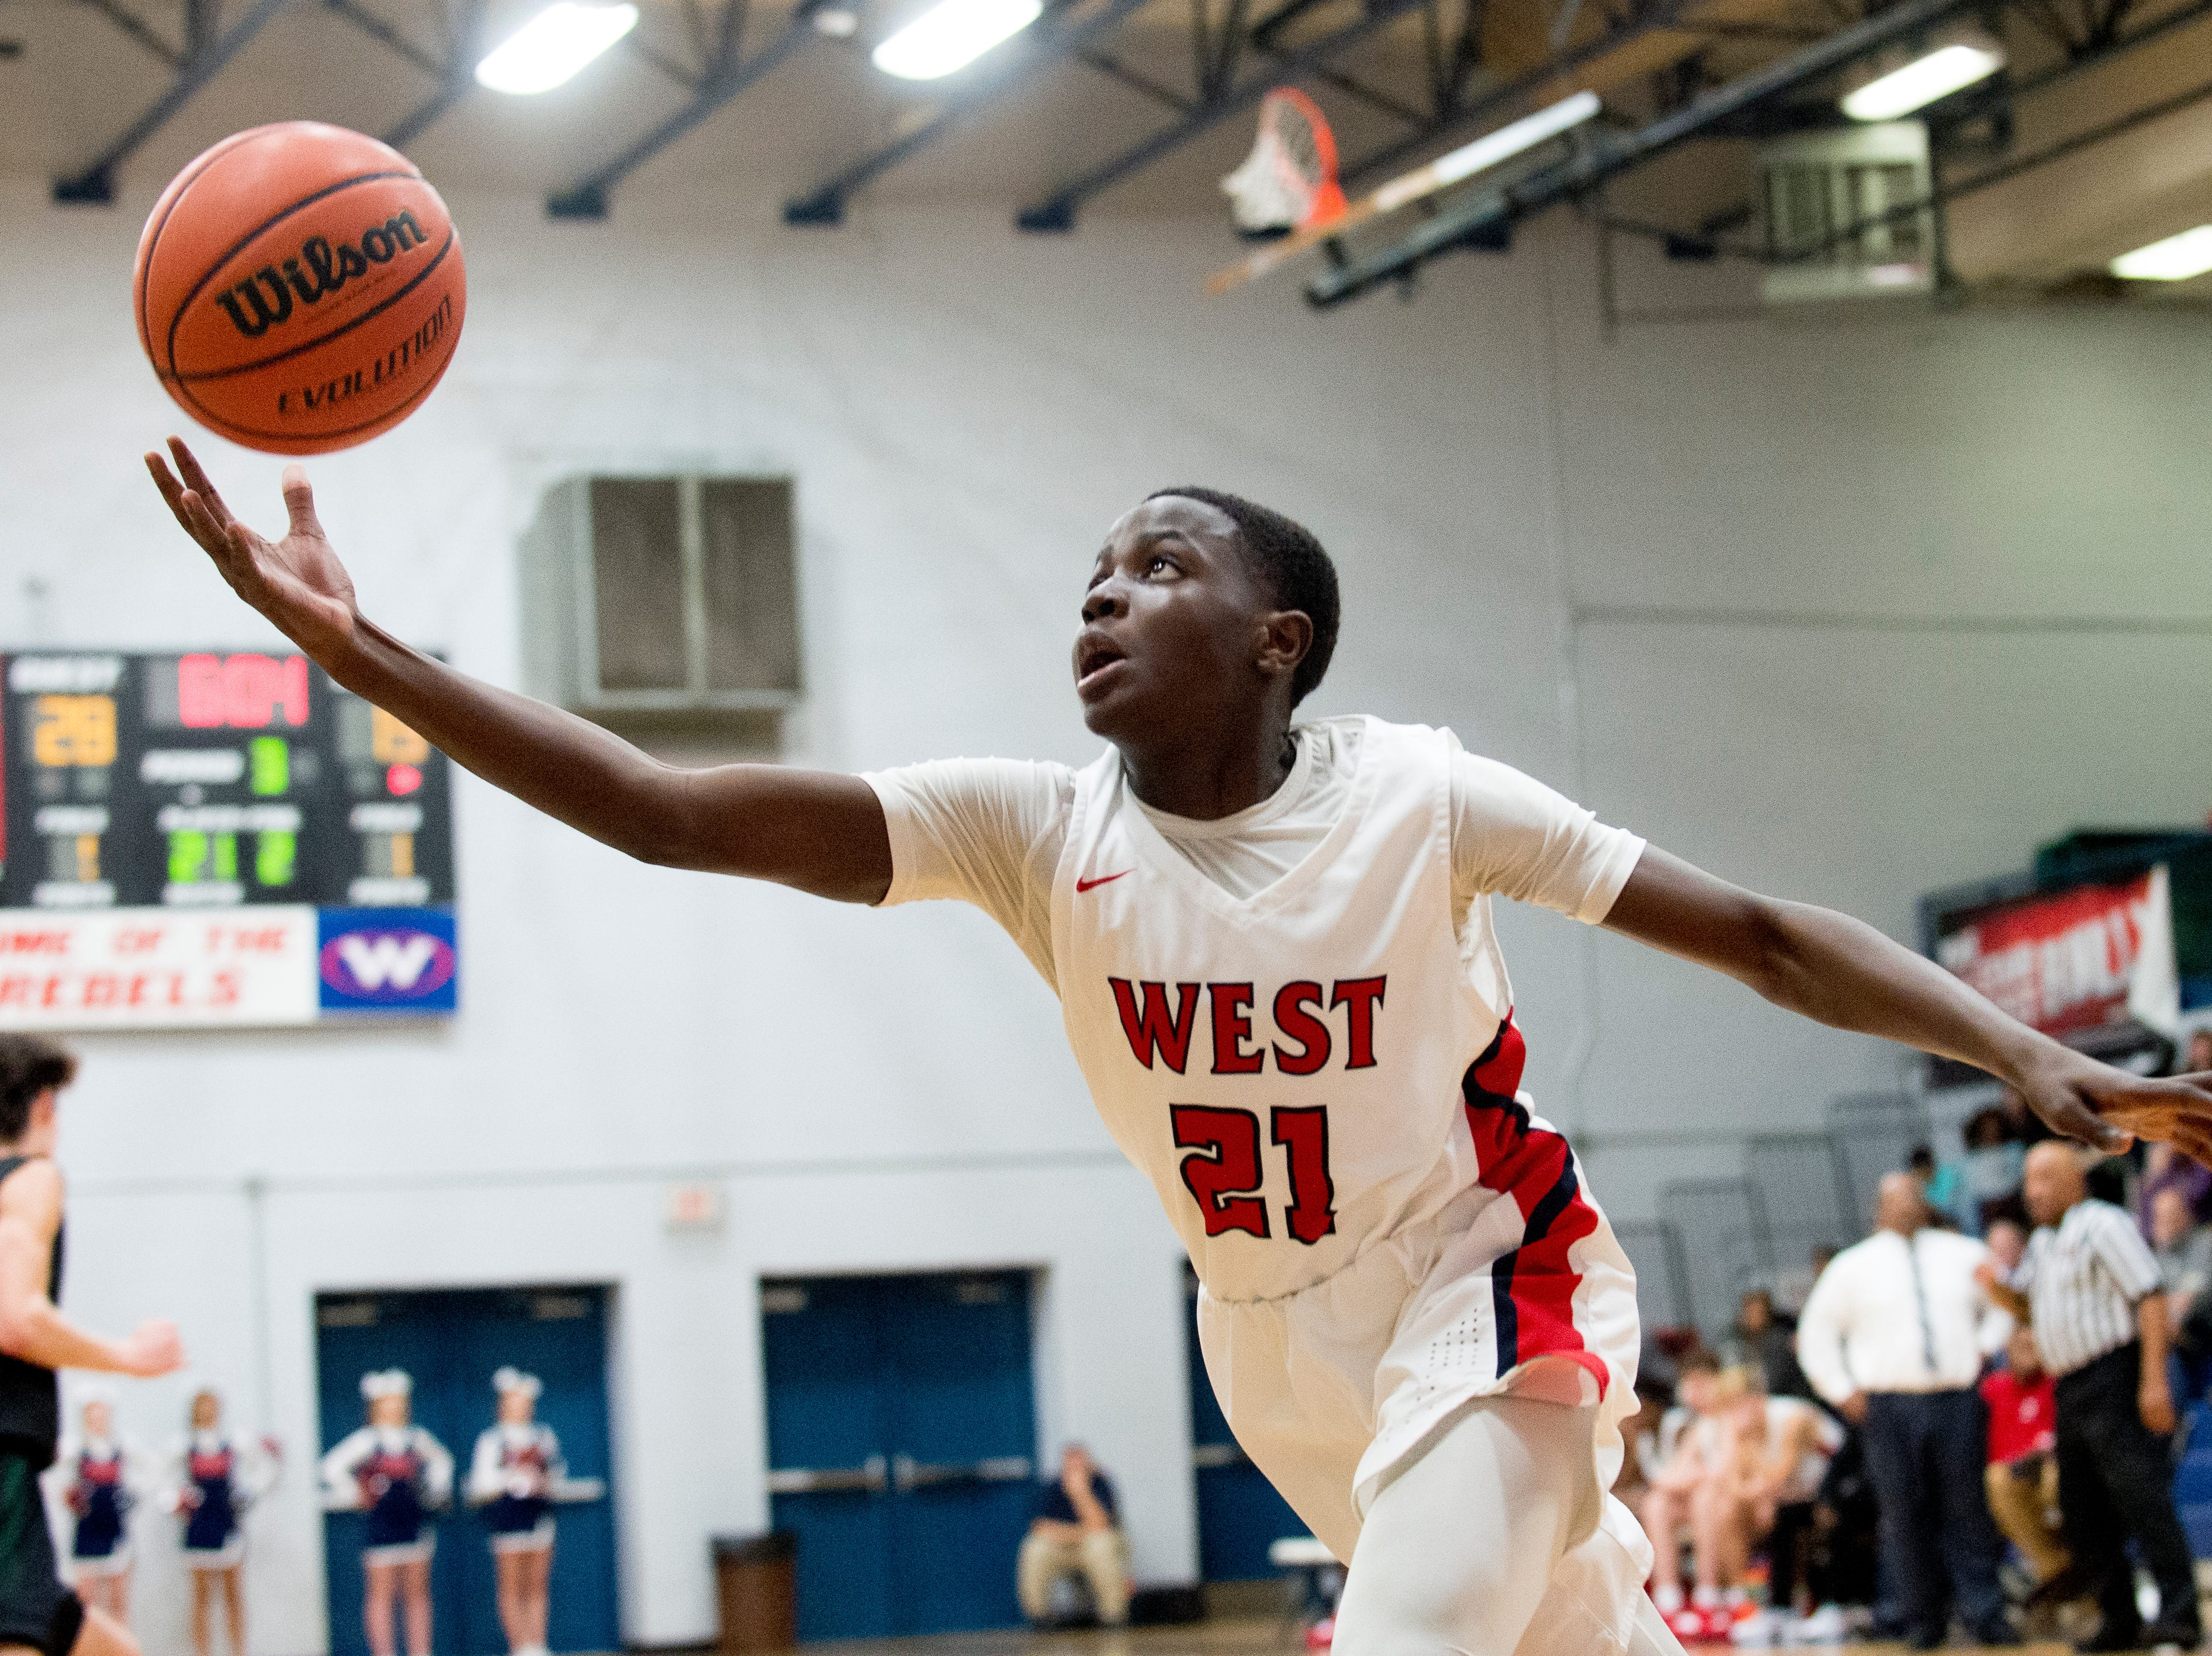 West's Michael Davis (21) reaches for the ball during a game between West and Webb at West High School in Knoxville, Tennessee on Friday, January 4, 2019.